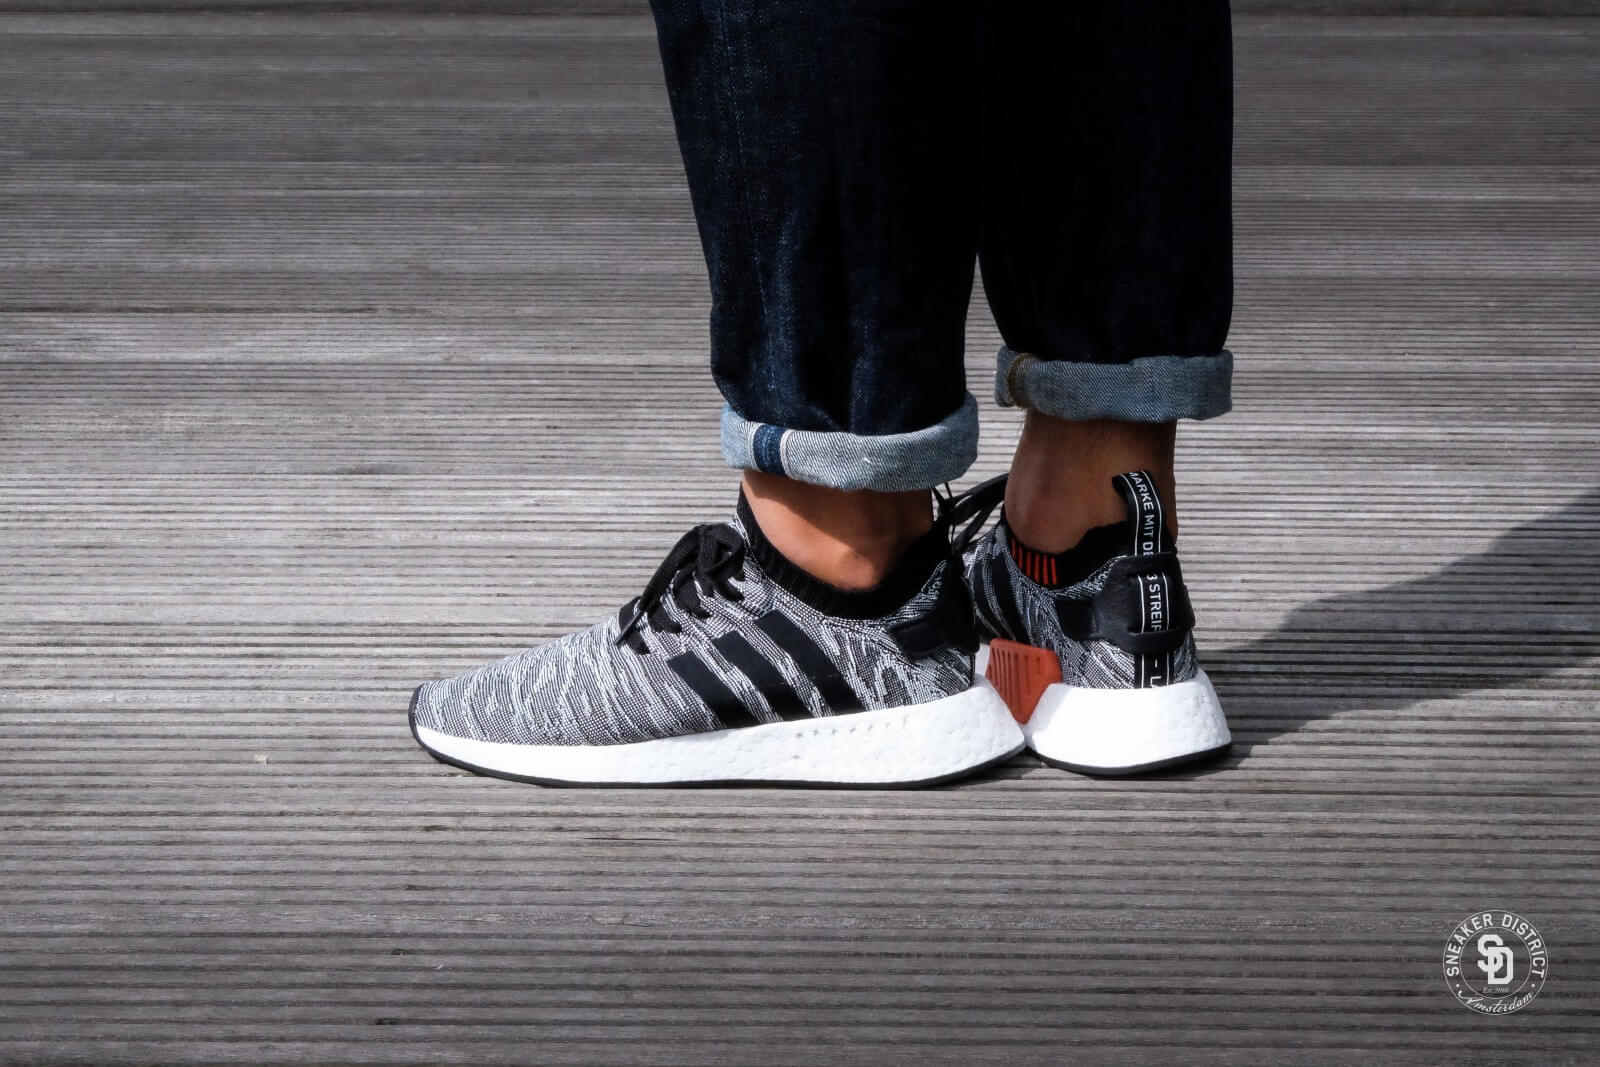 5f65f1bd1a15 Adidas Nmd R2 Pk Utility Black Core Black White Hers trainers CISMAI